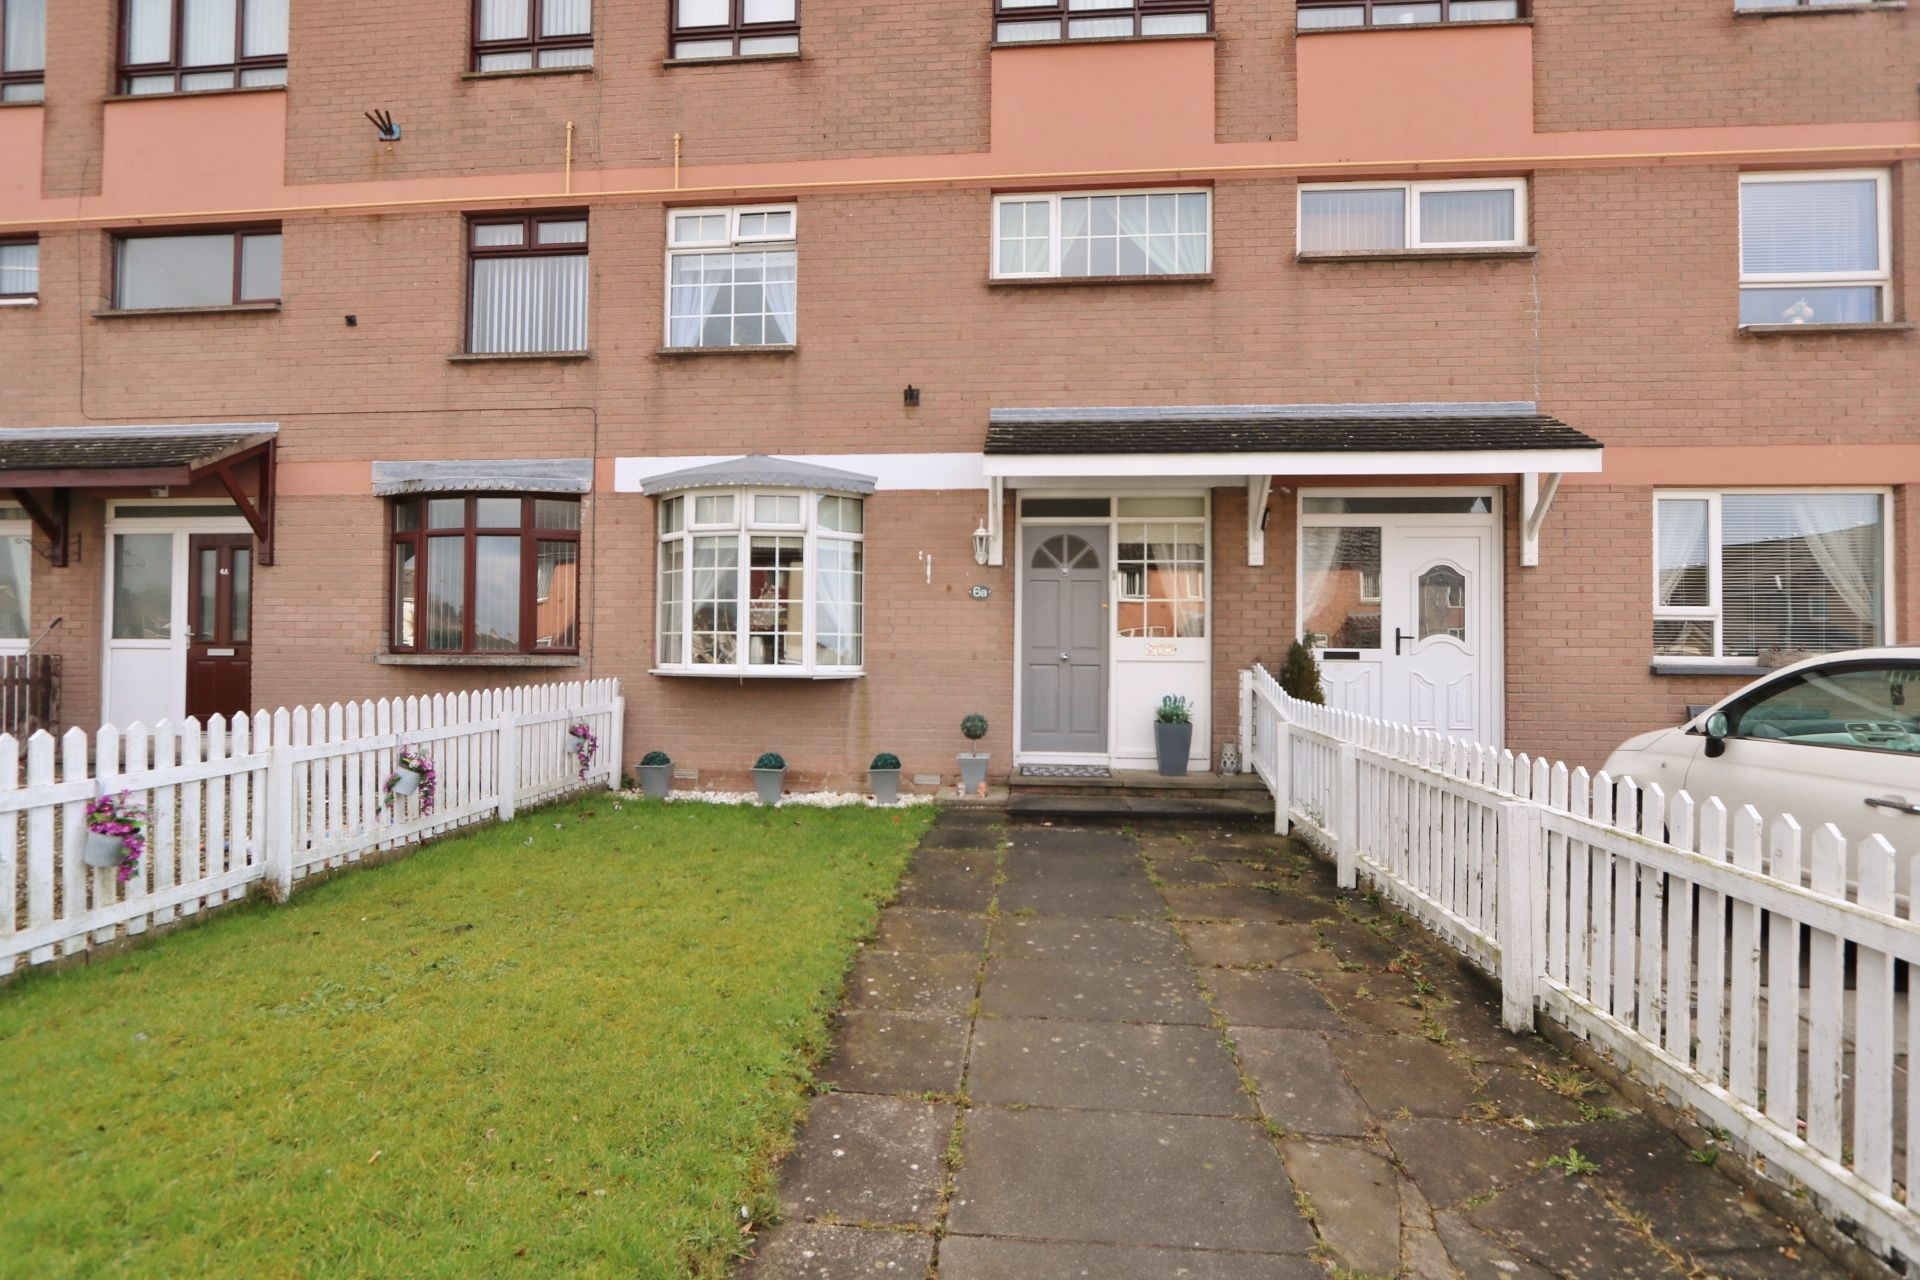 3 bedroom maisonette flat/apartment For Sale in Antrim - Property photograph